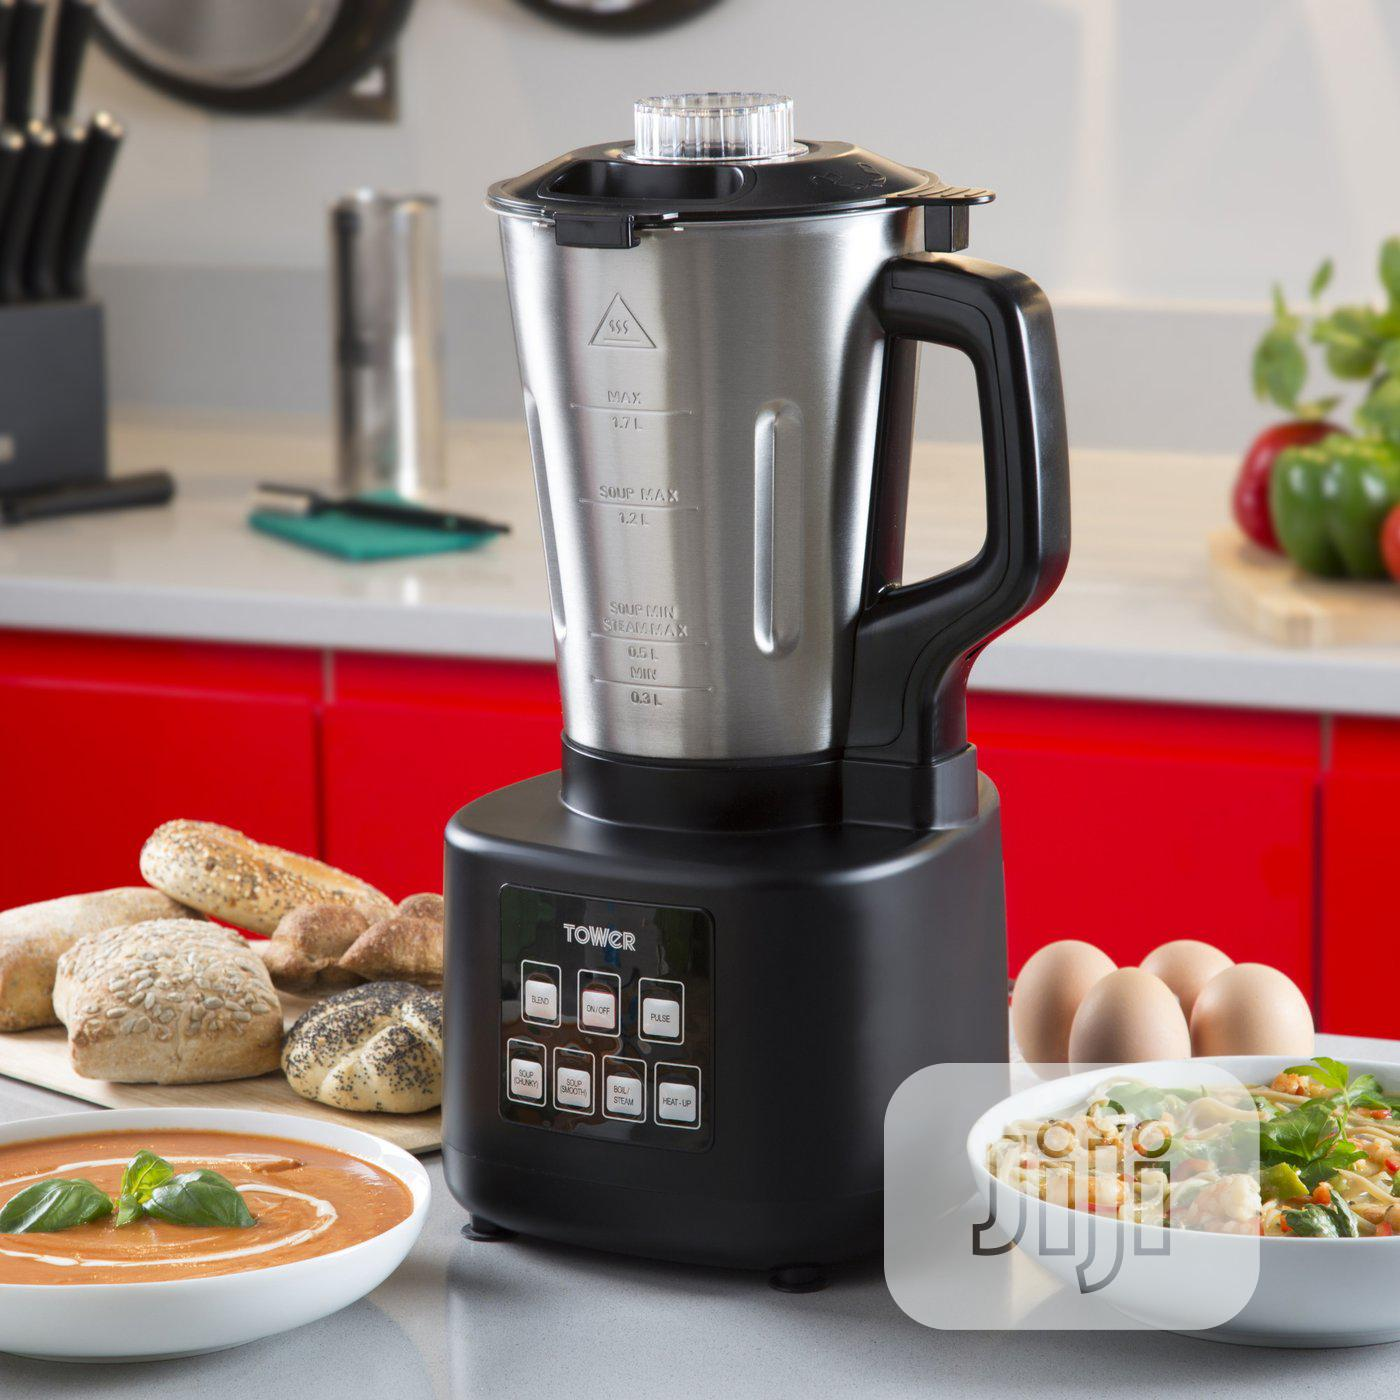 TOWER T12026 1.7L Stainless Steel Soup Maker 1200w